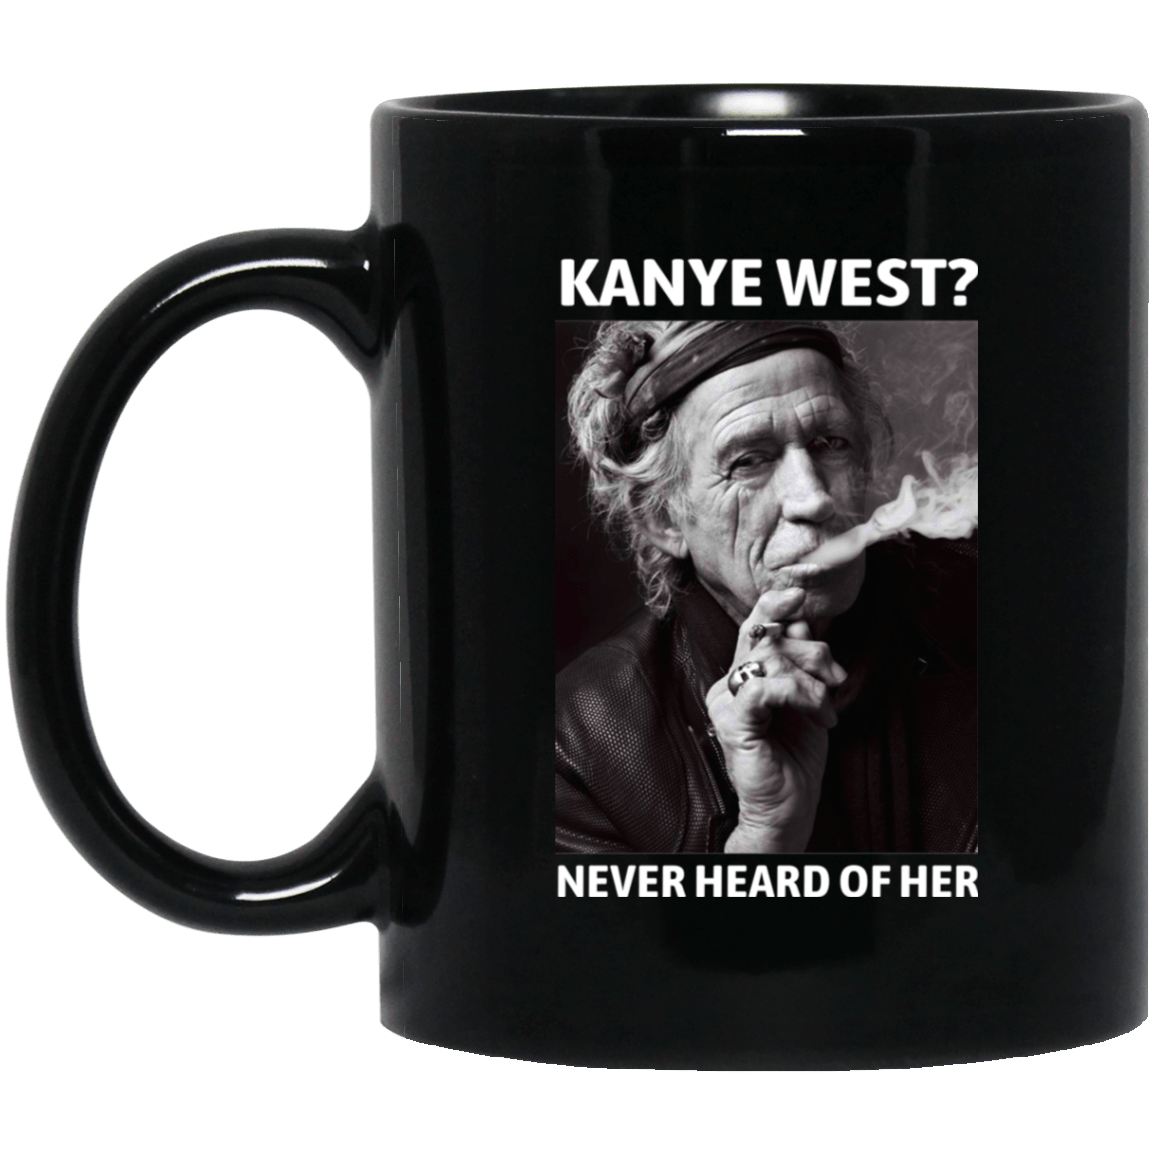 Kanye West Never Heard Of Her Keith Richards Version Mug 1065-10181-88282966-49307 - Tee Ript